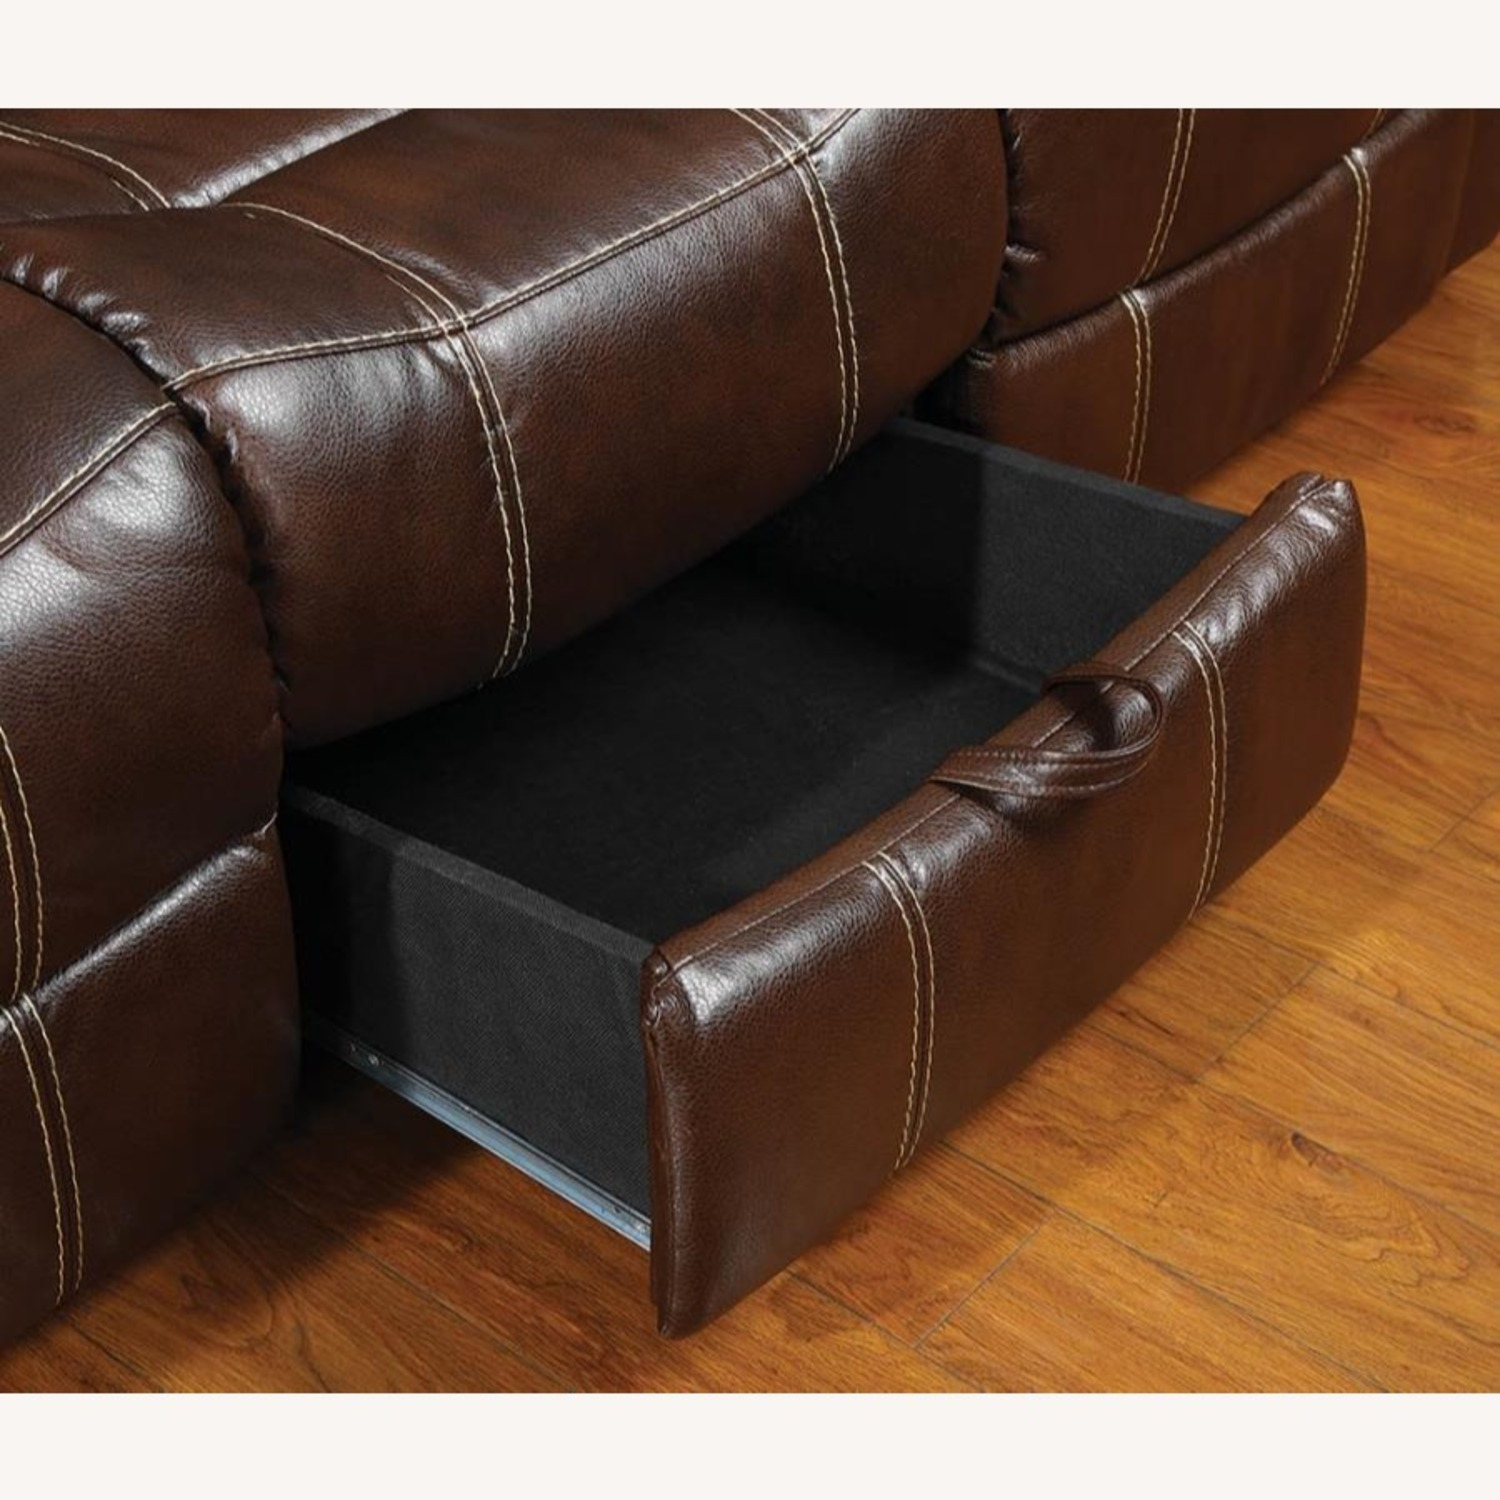 Motion Sofa In Chestnut Leather W/ Storage Drawer - image-5